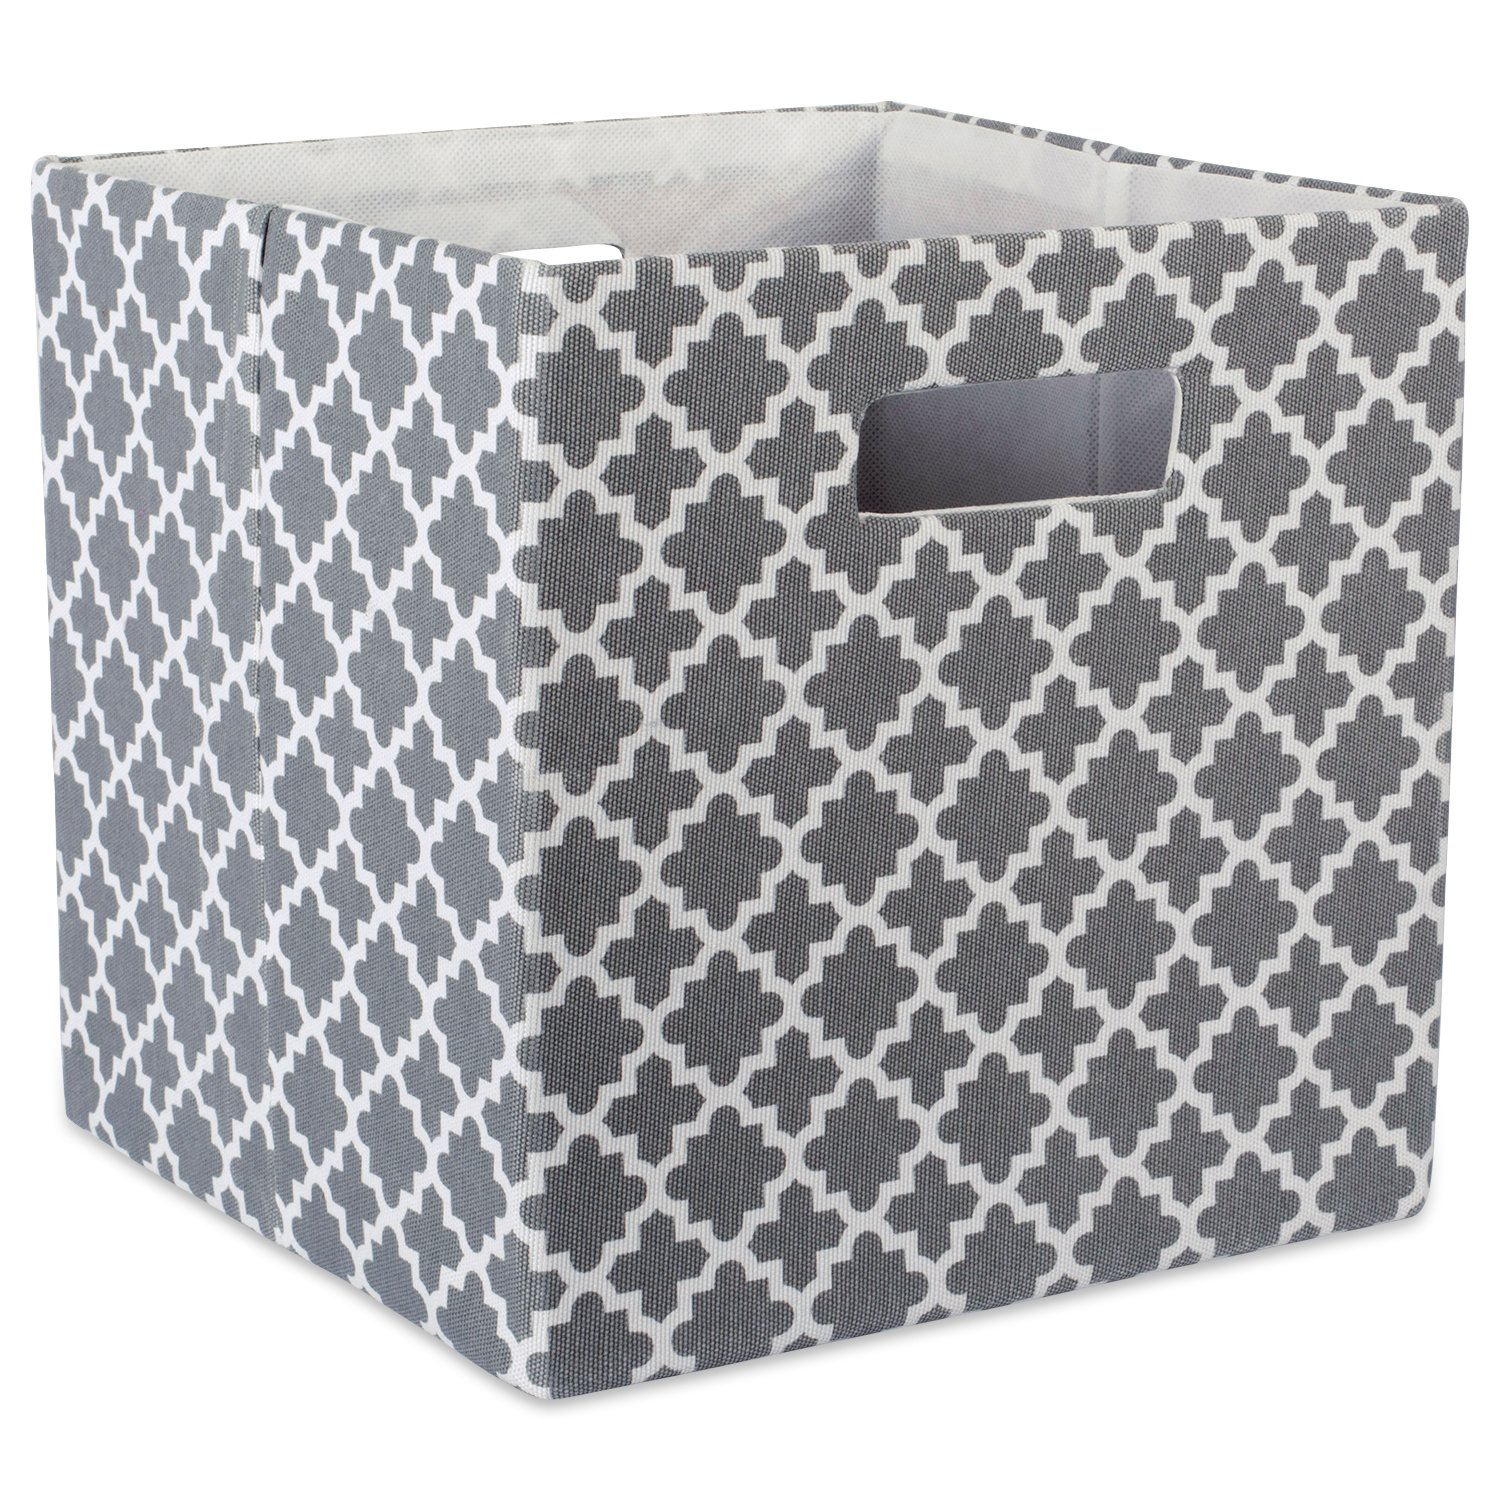 "DII Hard Sided Collapsible Fabric Storage Container for Nursery, Offices, & Home Organization, (13x13x13"") - Lattice Gray"